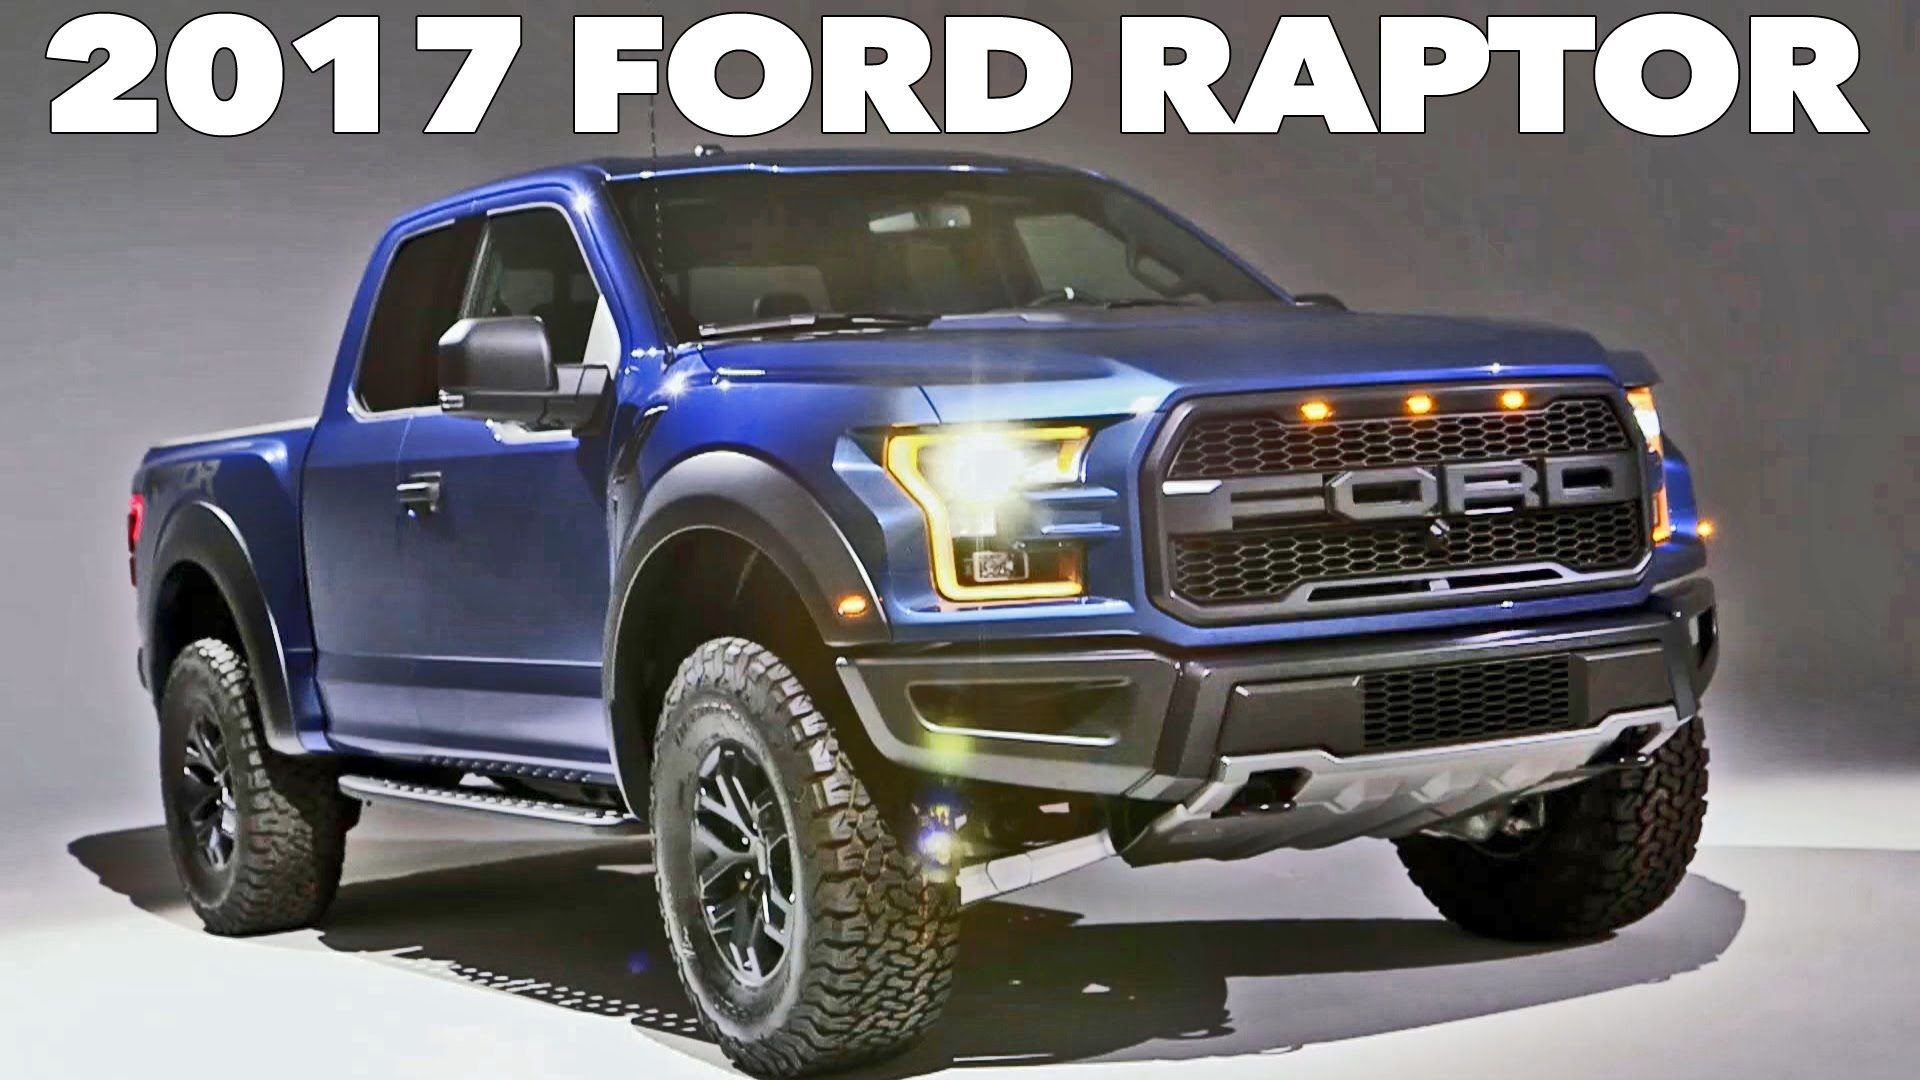 The 2017 Ford F 150 Raptor Super Crew Is Powered By The New Second Generation High Output Twin Turbo 3 Description From Relea Ford F150 Raptor Ford F150 Ford